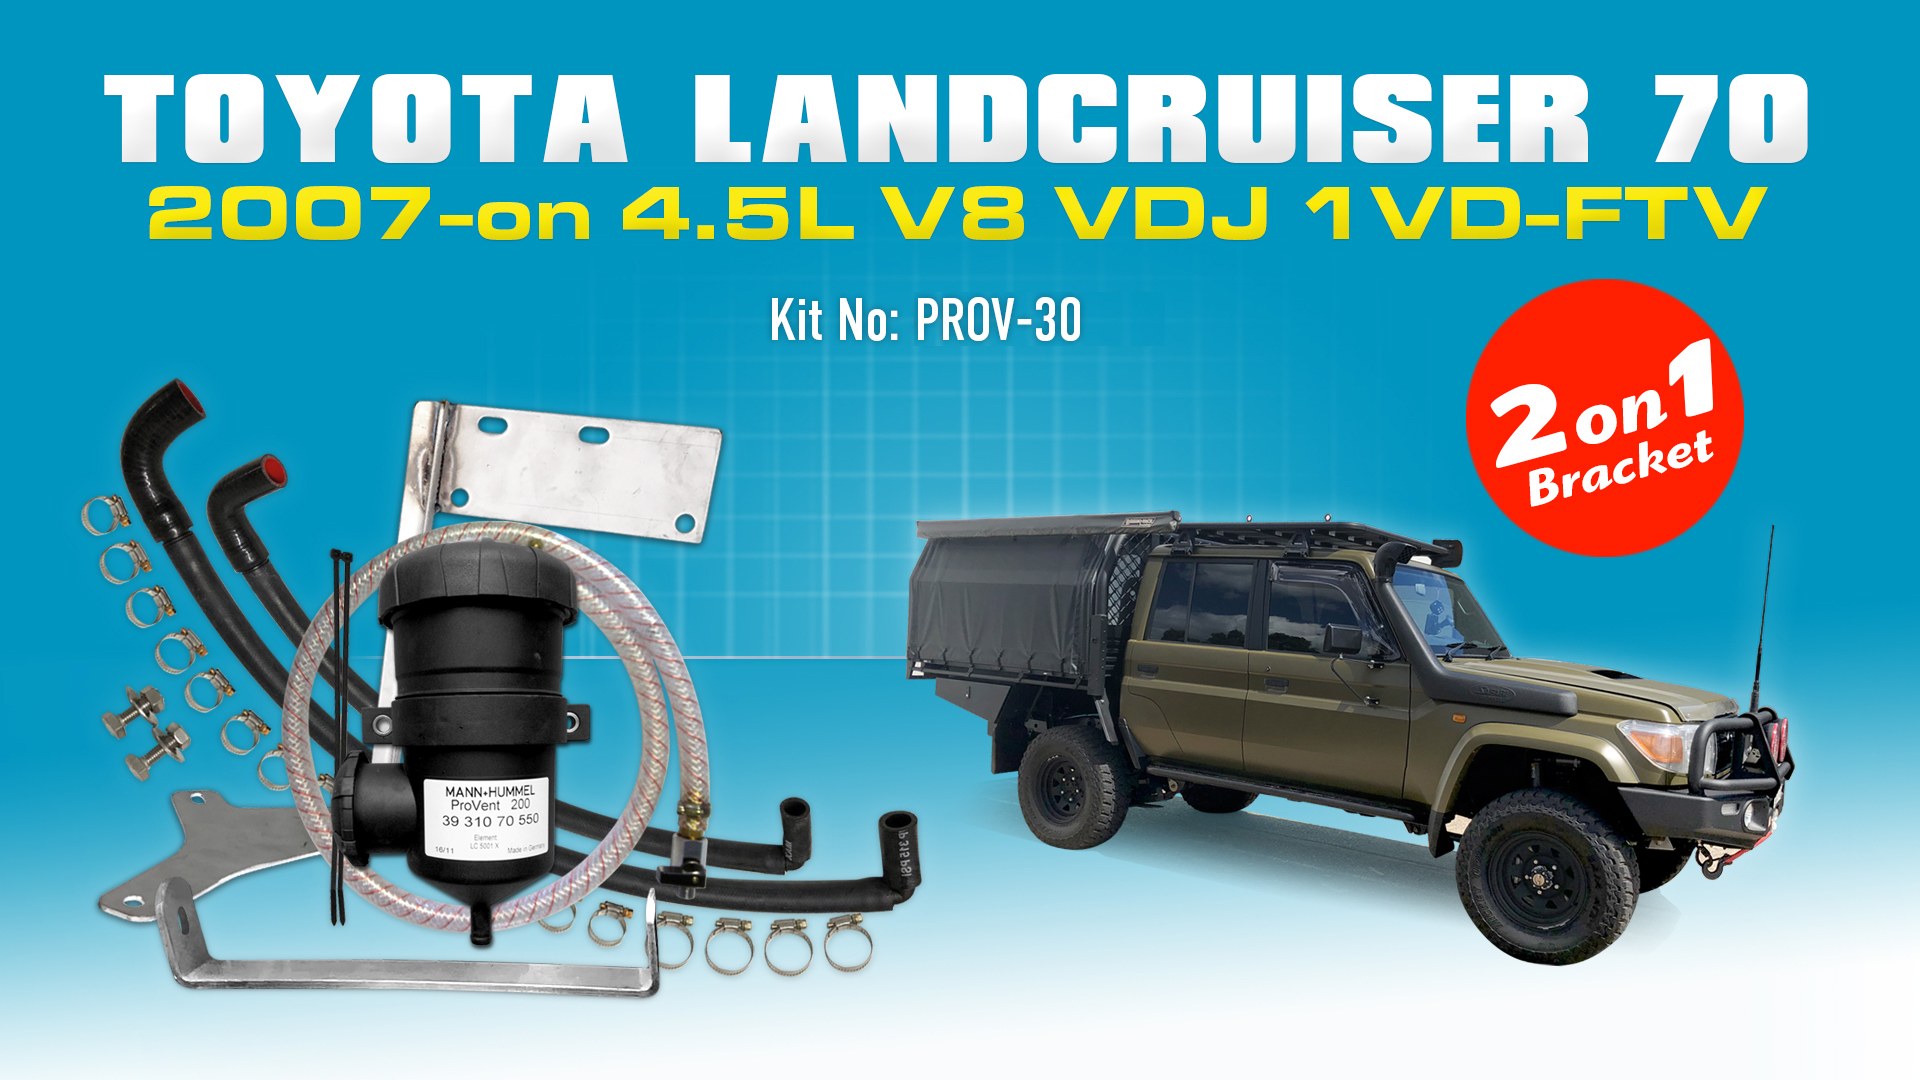 Toyota Landcruiser 70 Series 2007 On Suits Both Single And Dual 2002 Duramax Fuel Filter Bracket Battery Provent Oil Catch Can Kit Online Store